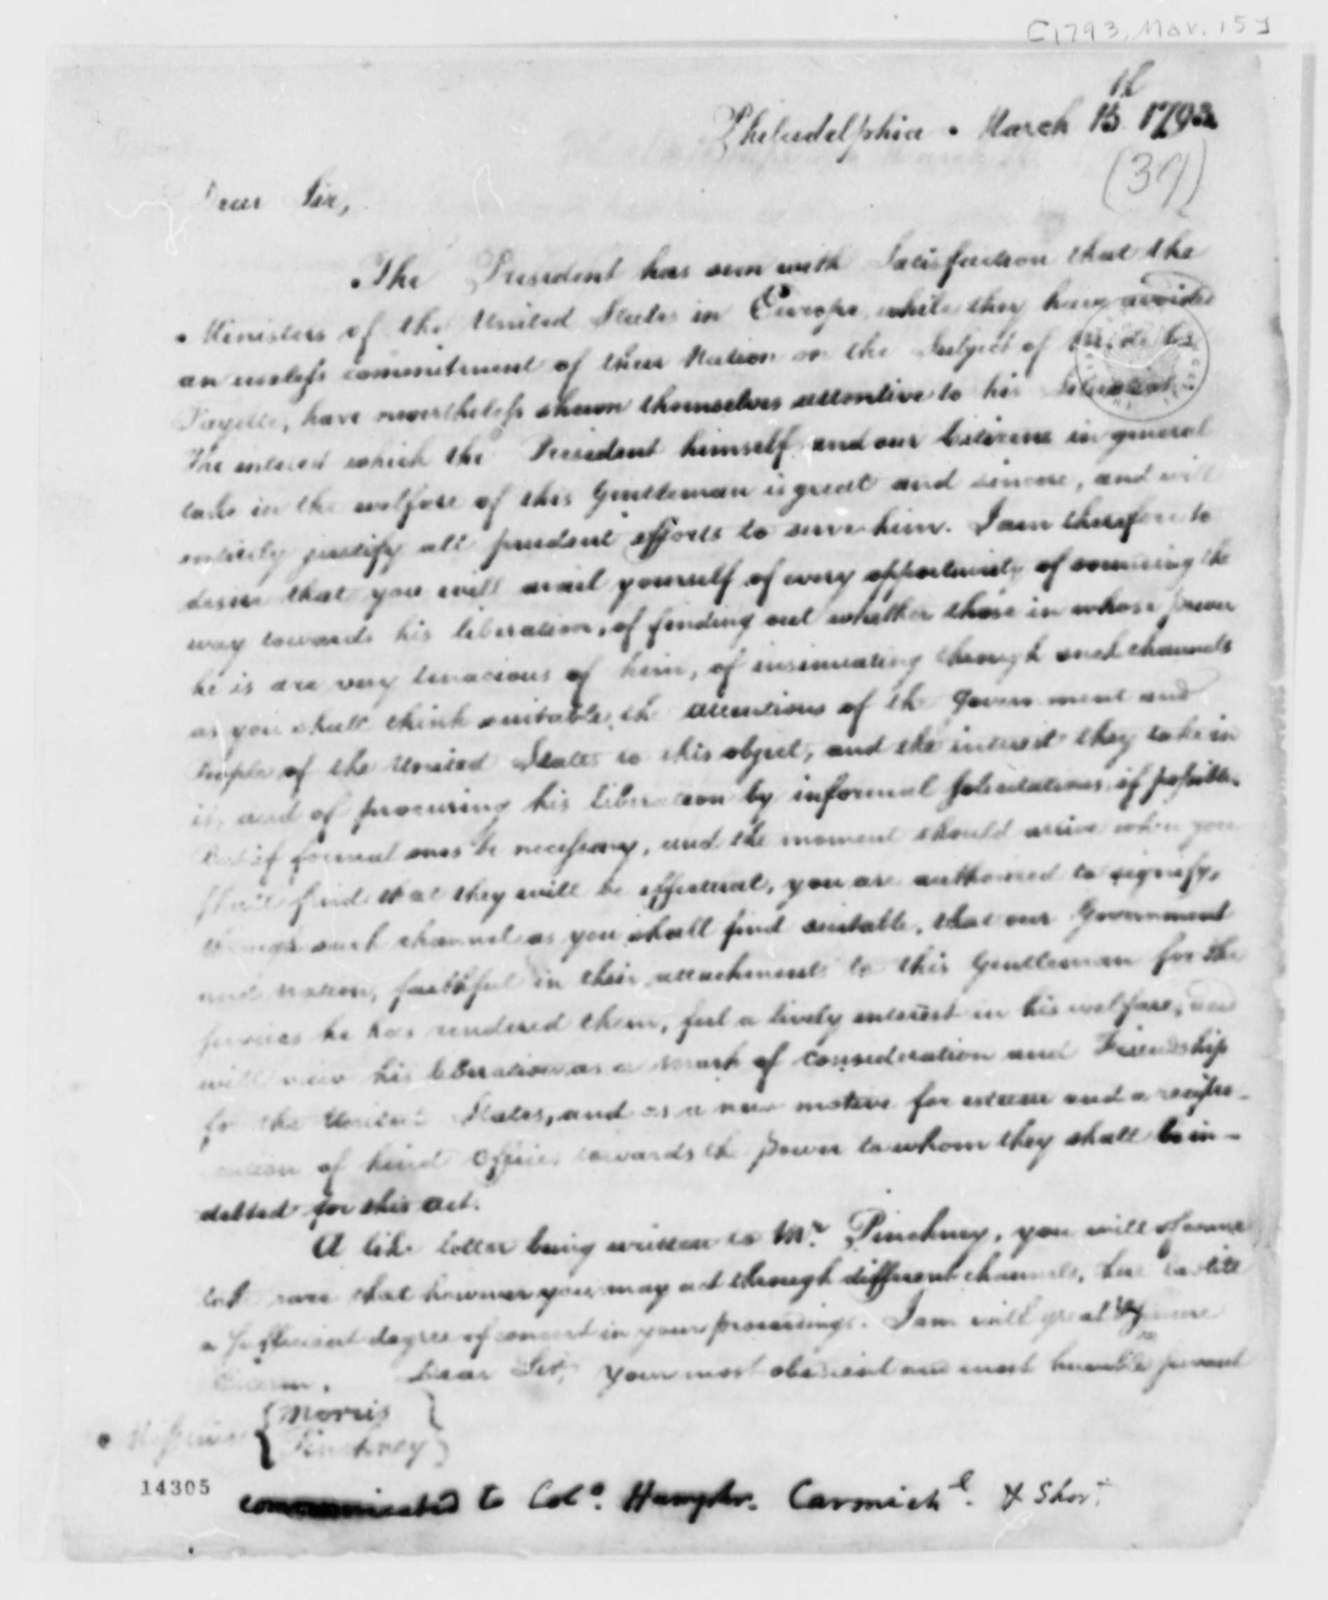 Thomas Jefferson to Gouverneur Morris, March 15, 1793, also to Thomas Pinckney, David Humphreys, William Carmichael, and William Short